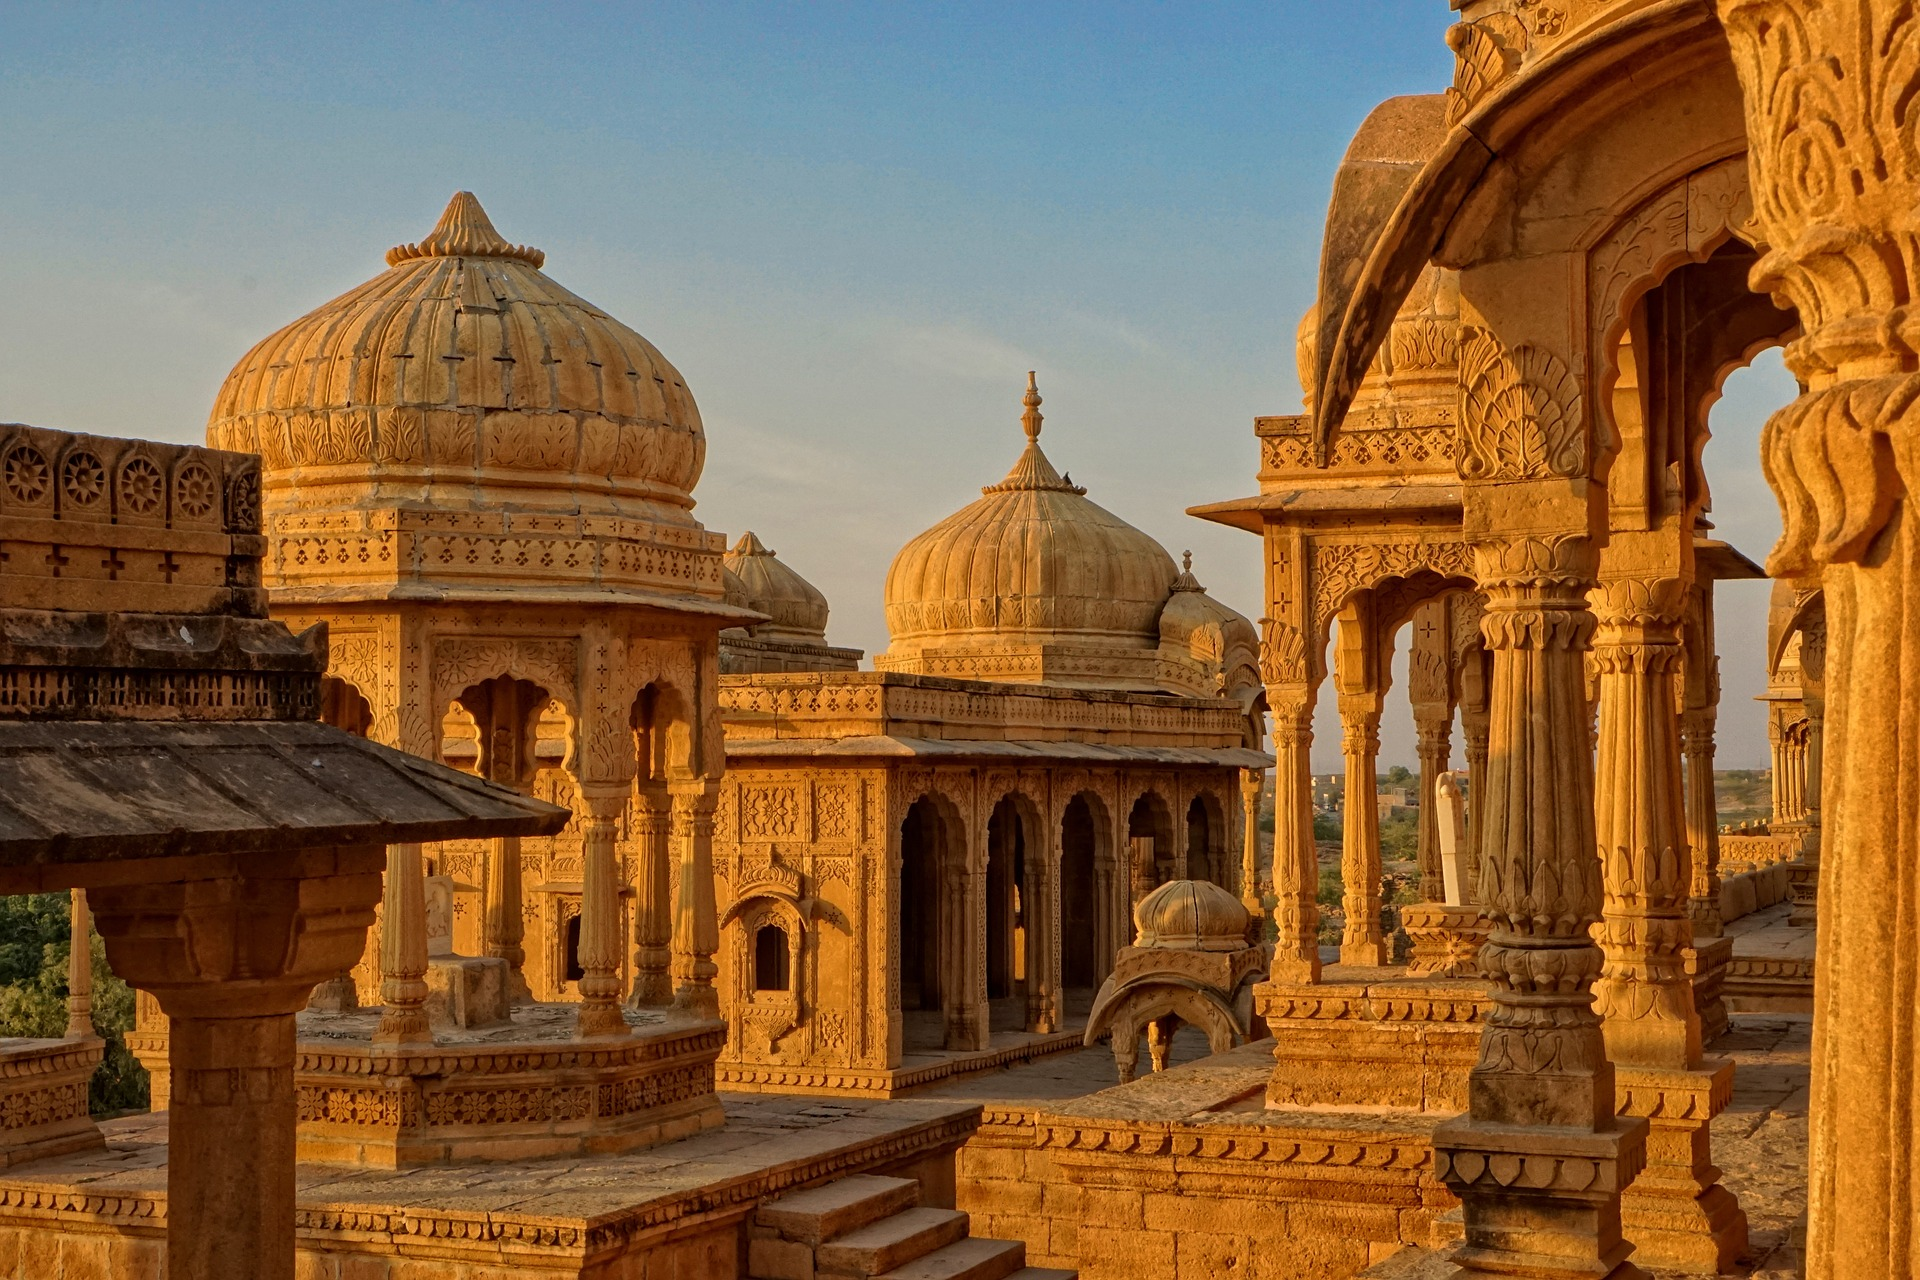 "jaisalmer ""width ="" 1920 ""height ="" 1280 ""srcset ="" https://www.topfivebuzz.com/wp-content/uploads/2019/08/jaisalmer. jpg 1920w, https://www.topfivebuzz.com/wp-content/uploads/2 019/08 / jaisalmer-300x200.jpg 300w, https://www.topfivebuzz.com/wp-content/uploads/2019/08 /jaisalmer-768x512.jpg 768w, https://www.topfivebuzz.com/wp-content/ uploads / 2019/08 / jaisalmer-1024x683.jpg 1024w, https://www.topfivebuzz.com/wp-content/uploads /2019/08/jaisalmer-630x420.jpg 630w, https: //www.topfivebuzz. DE / wp-content / uploads / 2019/08 / jaisalmer-640x427.jpg 640w, https://www.topfivebuzz.com/wp-content/uploads/2019/08/jaisalmer-681x454.jpg 681w, https: // www.topfivebuzz.com/wp-content/uploads/2019/08/jaisalmer-313x209.jpg 313w ""sizes ="" (maximum width: 1920px) 100vw, 1920px ""/> </noscript> There is no better way to do this Exploring the provincial town is unlike taking a bike tour in the area – such cycling can lead to unexpected situations – S0, your bike must be fully equipped with OEM motorcycle fairings to meet a mishap – the neighborhood is full of castles and palaces. </p> <p>  On a motorcycle tour you will most likely explore the small niches and corners of the metropolis and learn more about their history and heritage. </p> <h3><b>  4 Jaipur-Udaipur-Mount-Abu-Pushkar Motorcycle Expedition </b></h3> <p><img class="